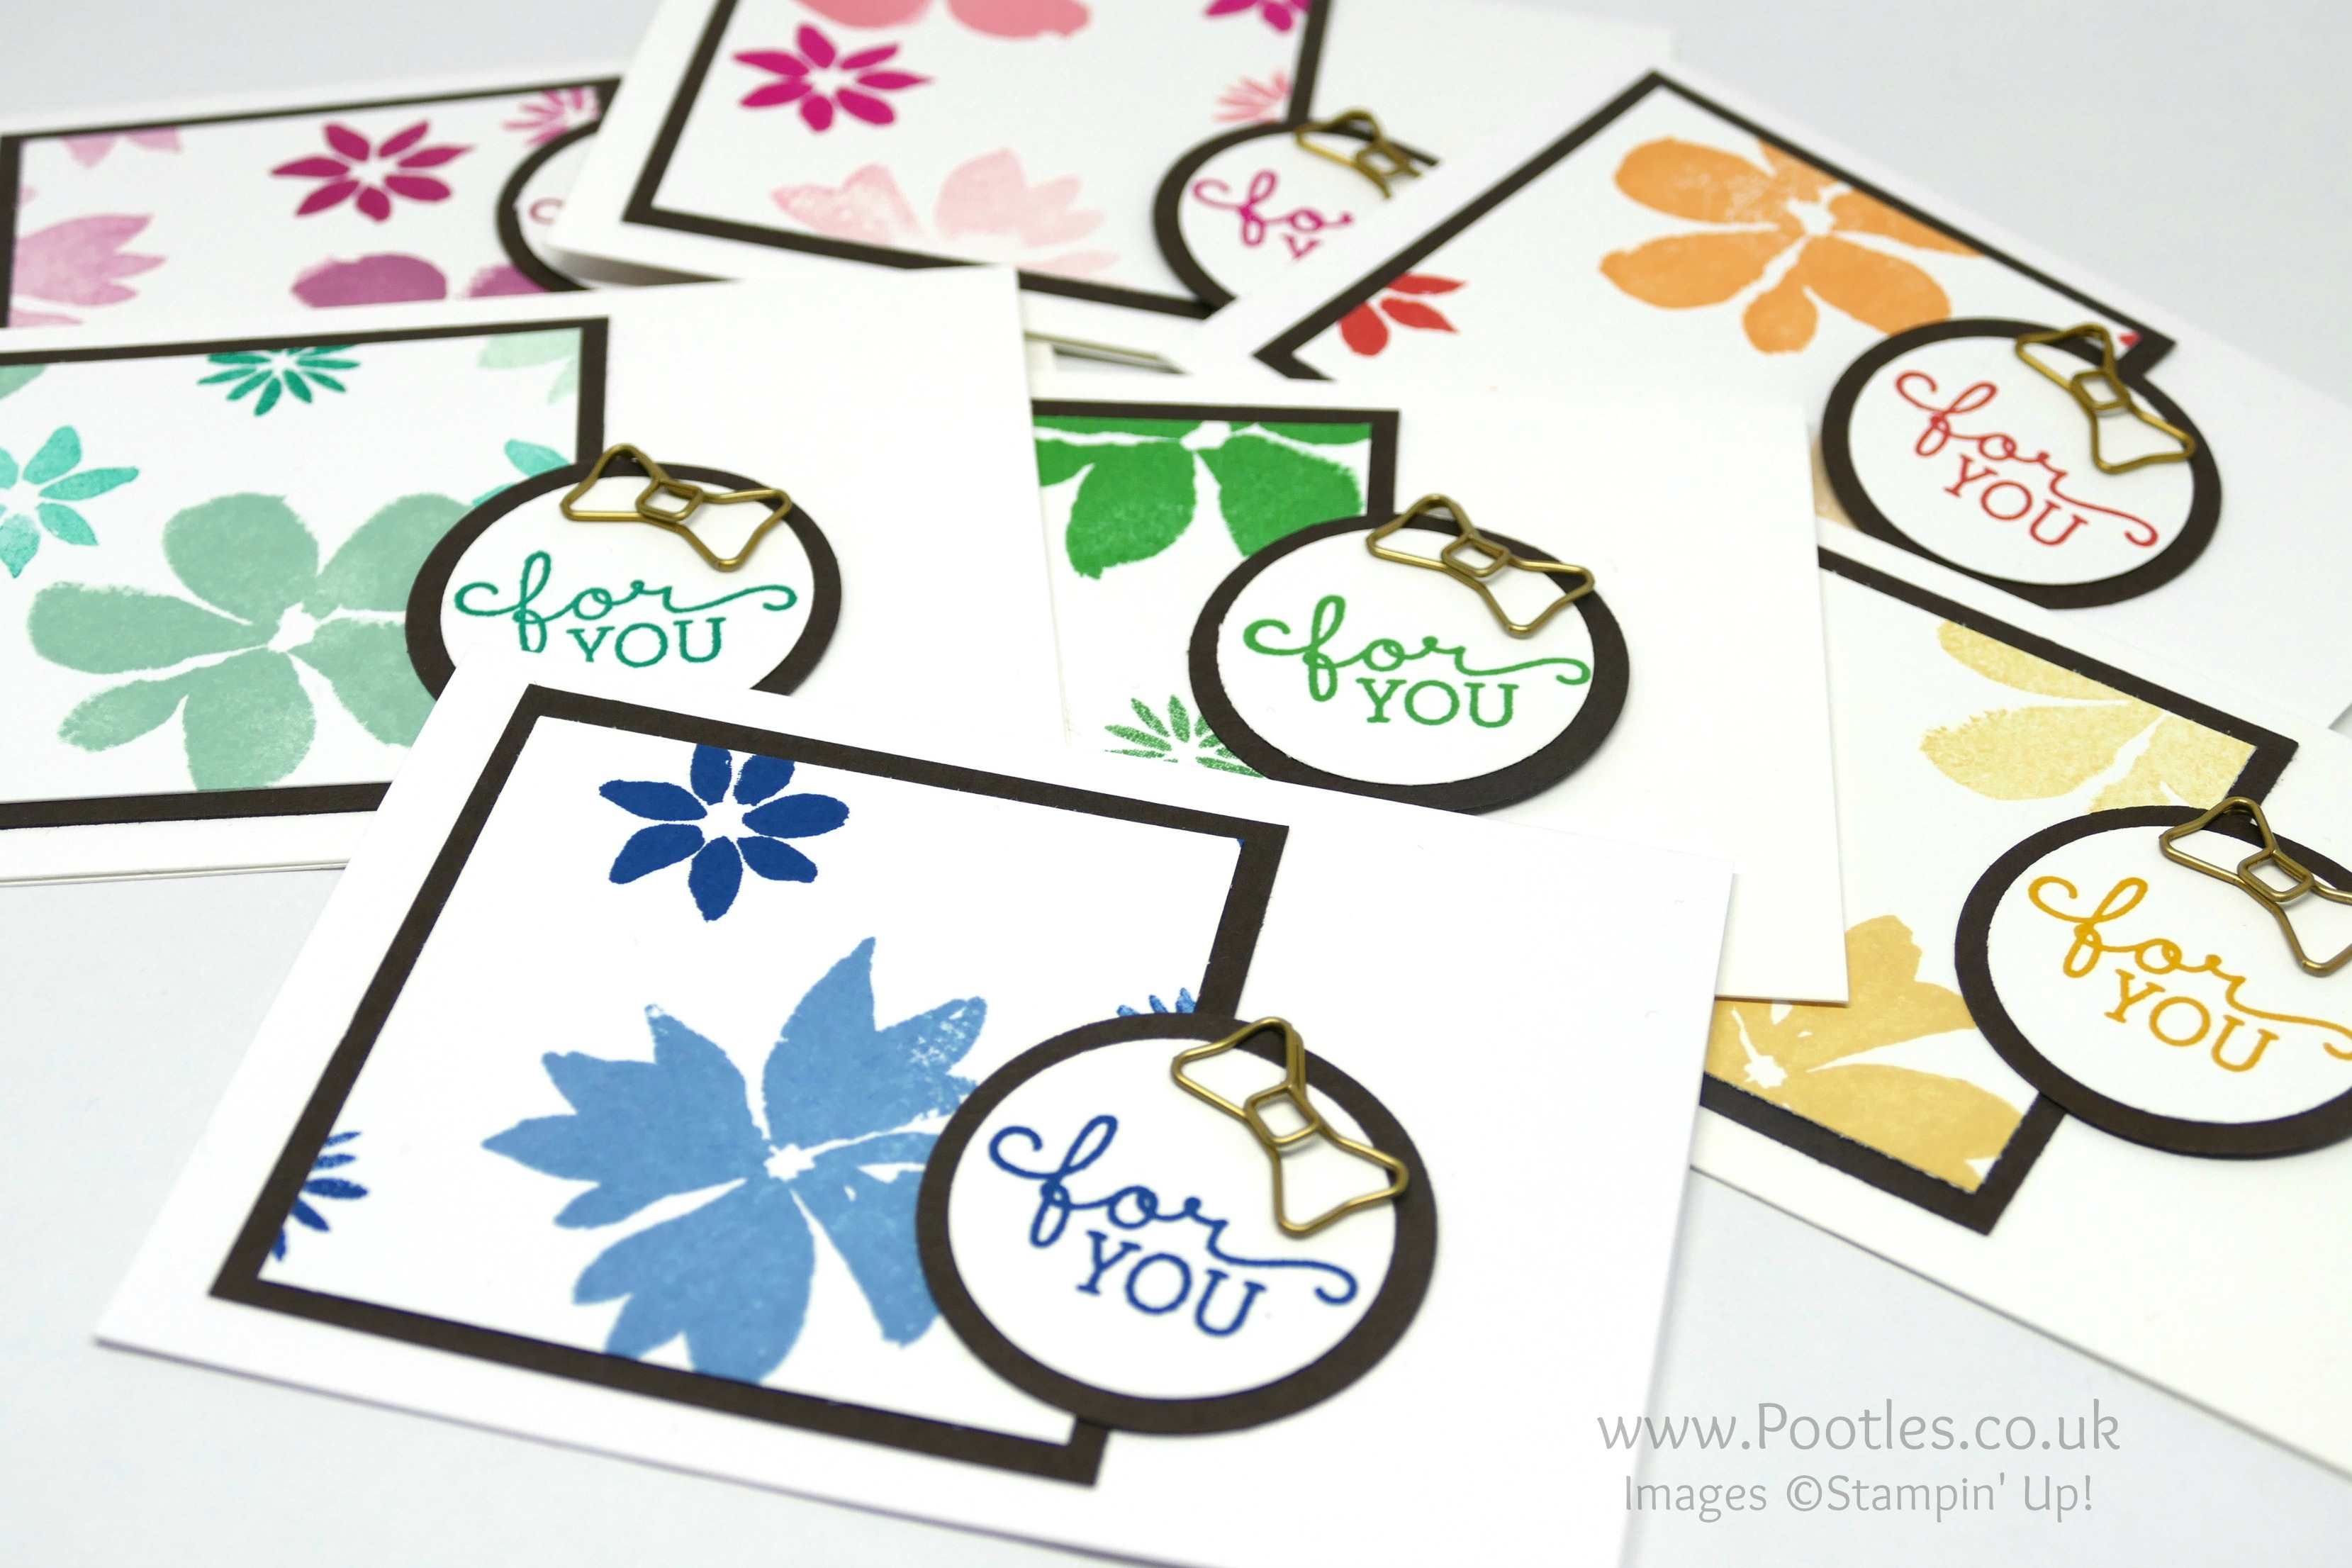 Stampin' Up! Demonstrator Pootles.